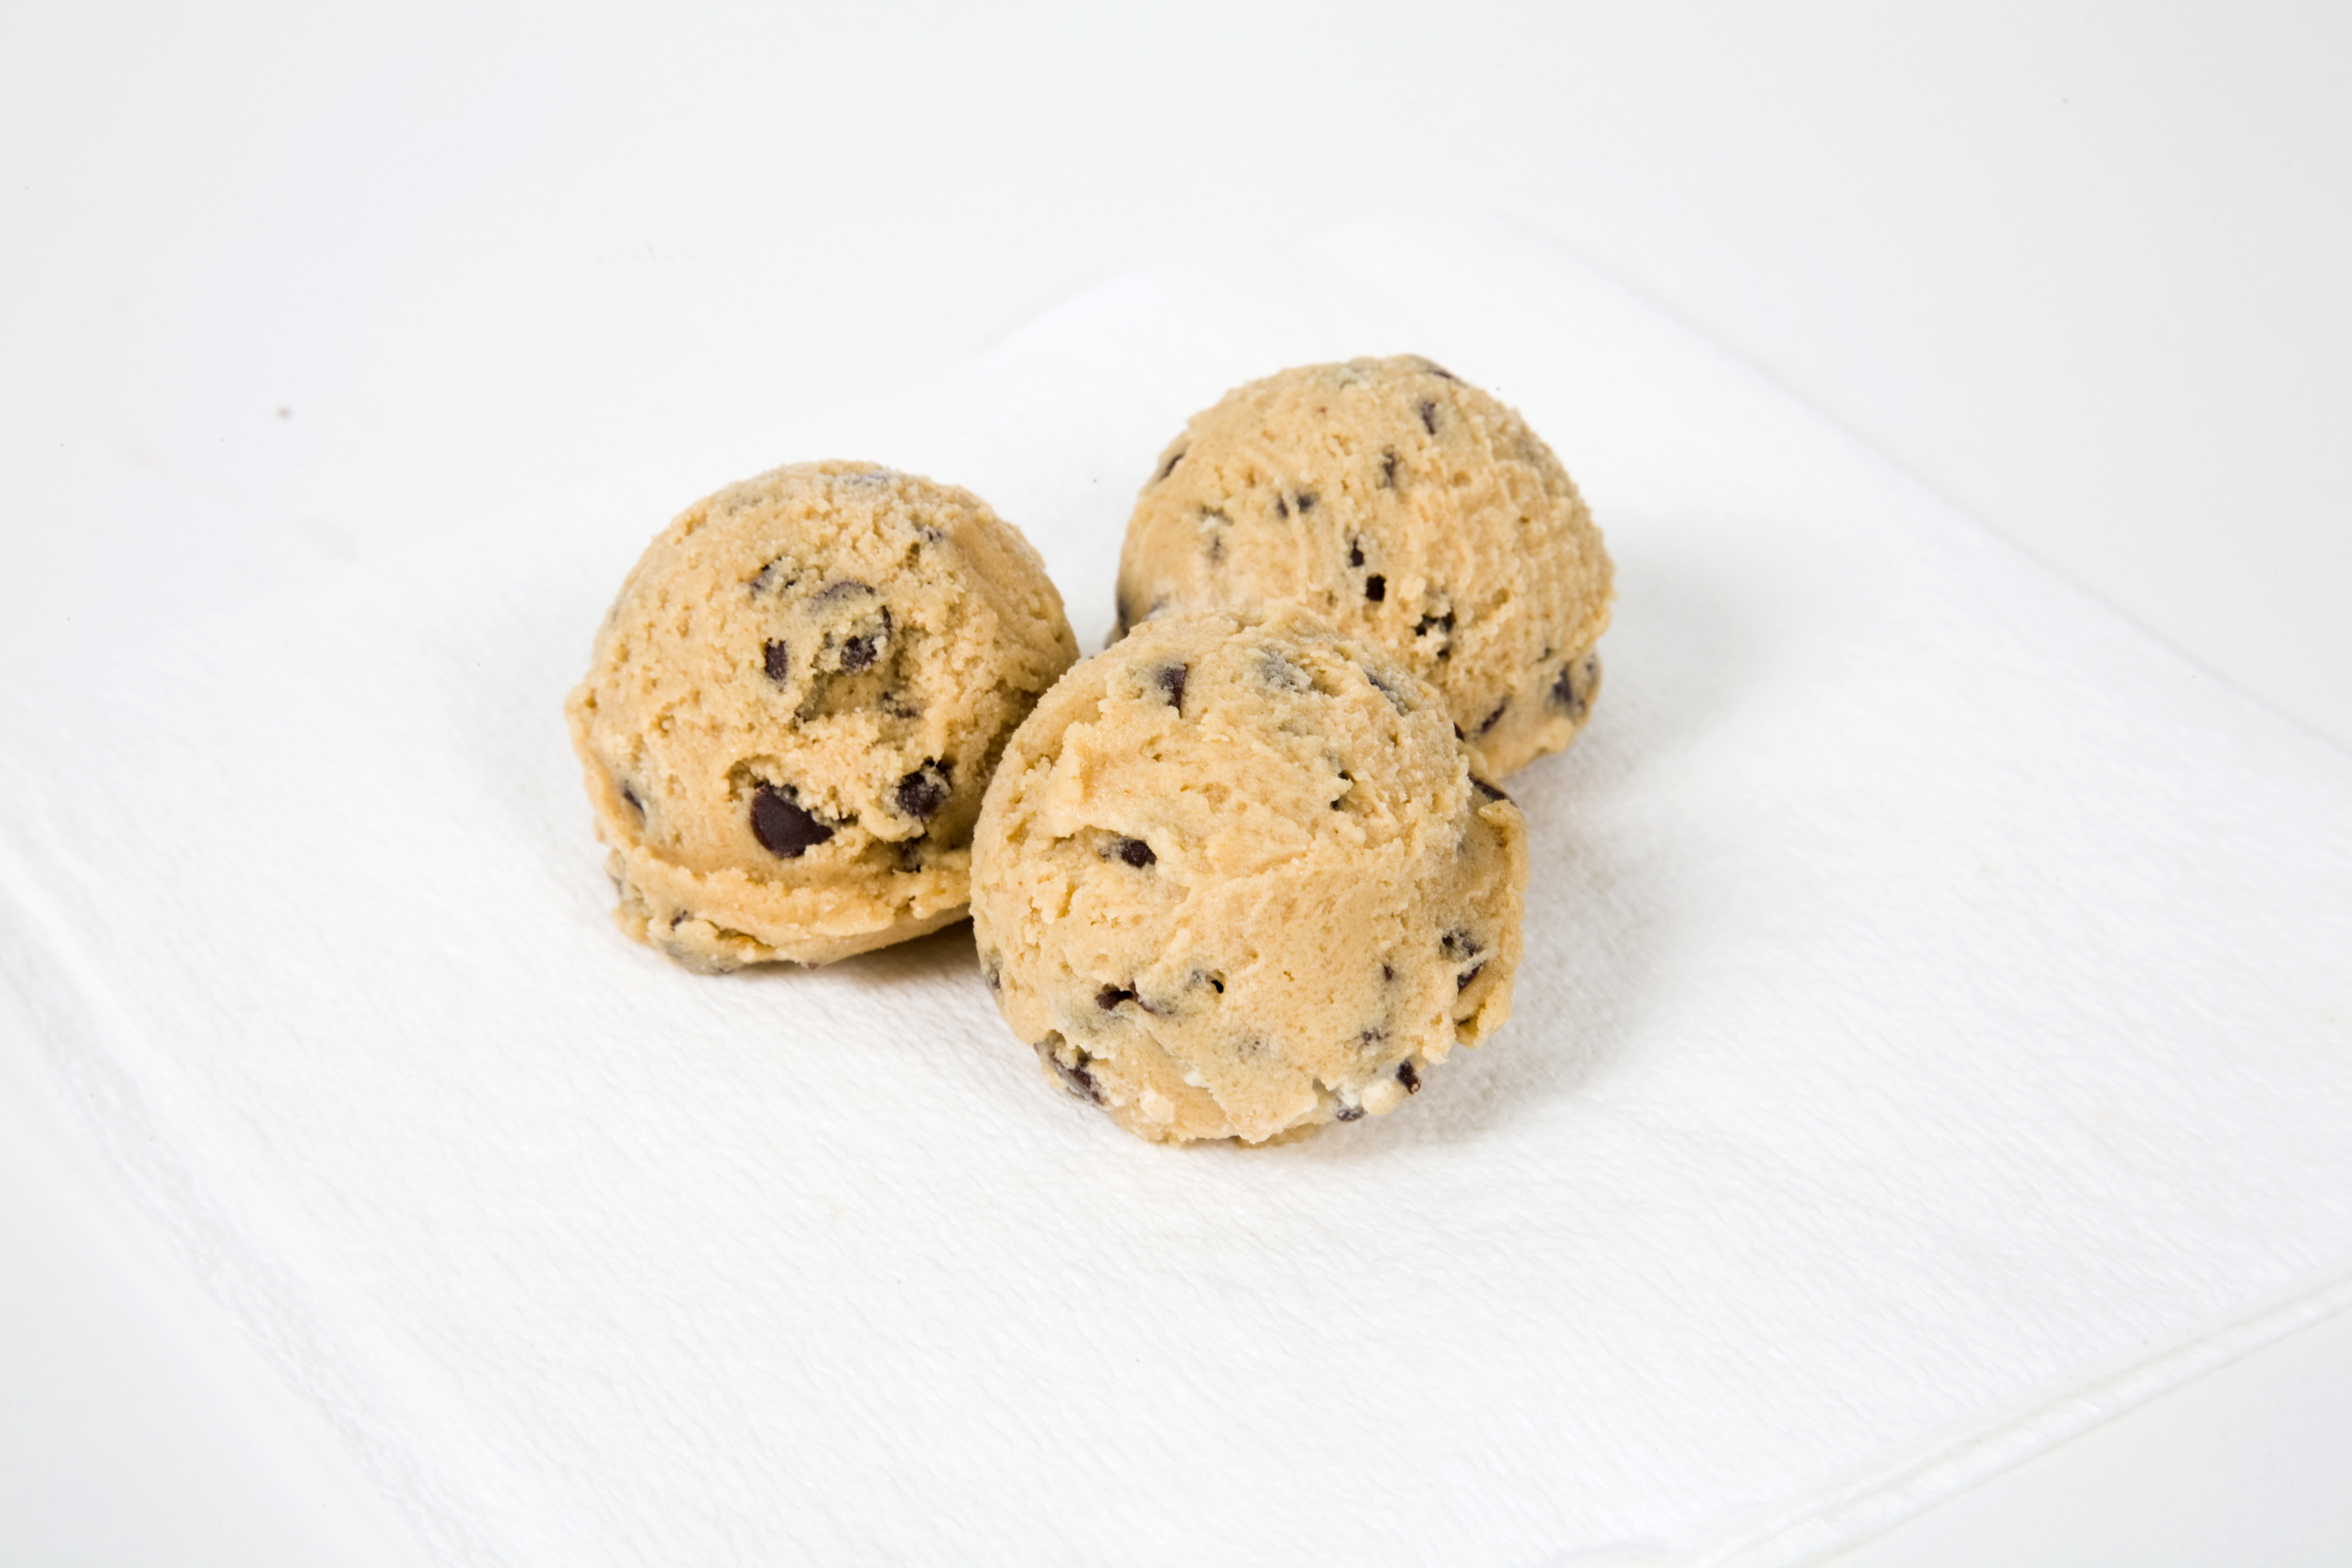 Chocolate Chip Cookie Dough Balls at the University of Maryland Ice Cream Making Facilities in College Park Maryland